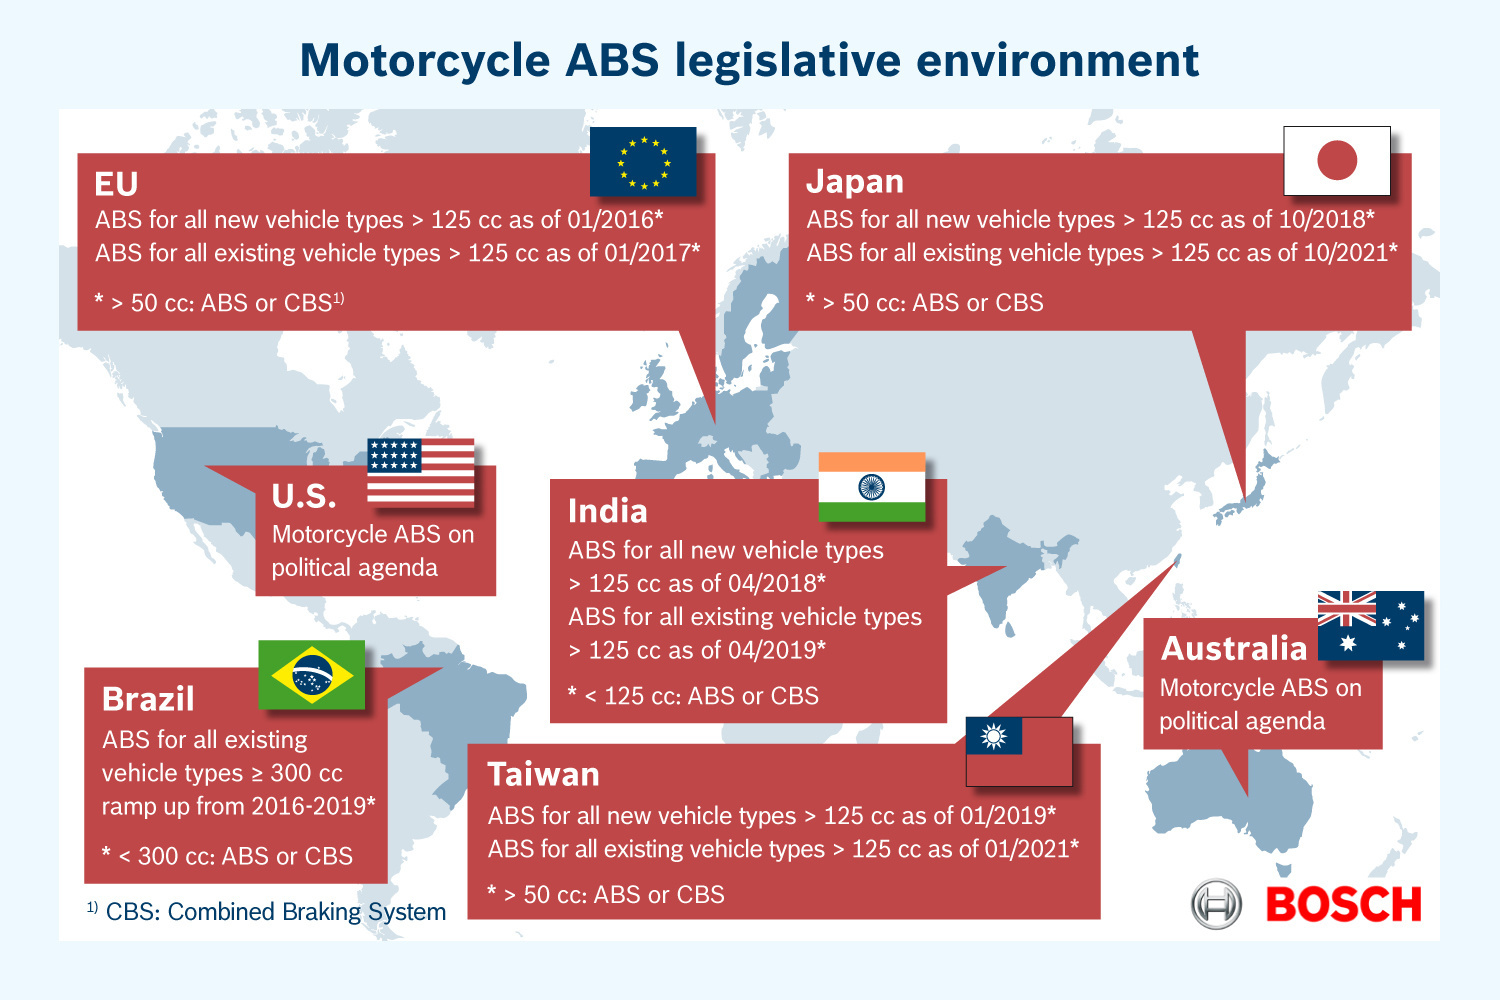 Motorcycle ABS legislative environment